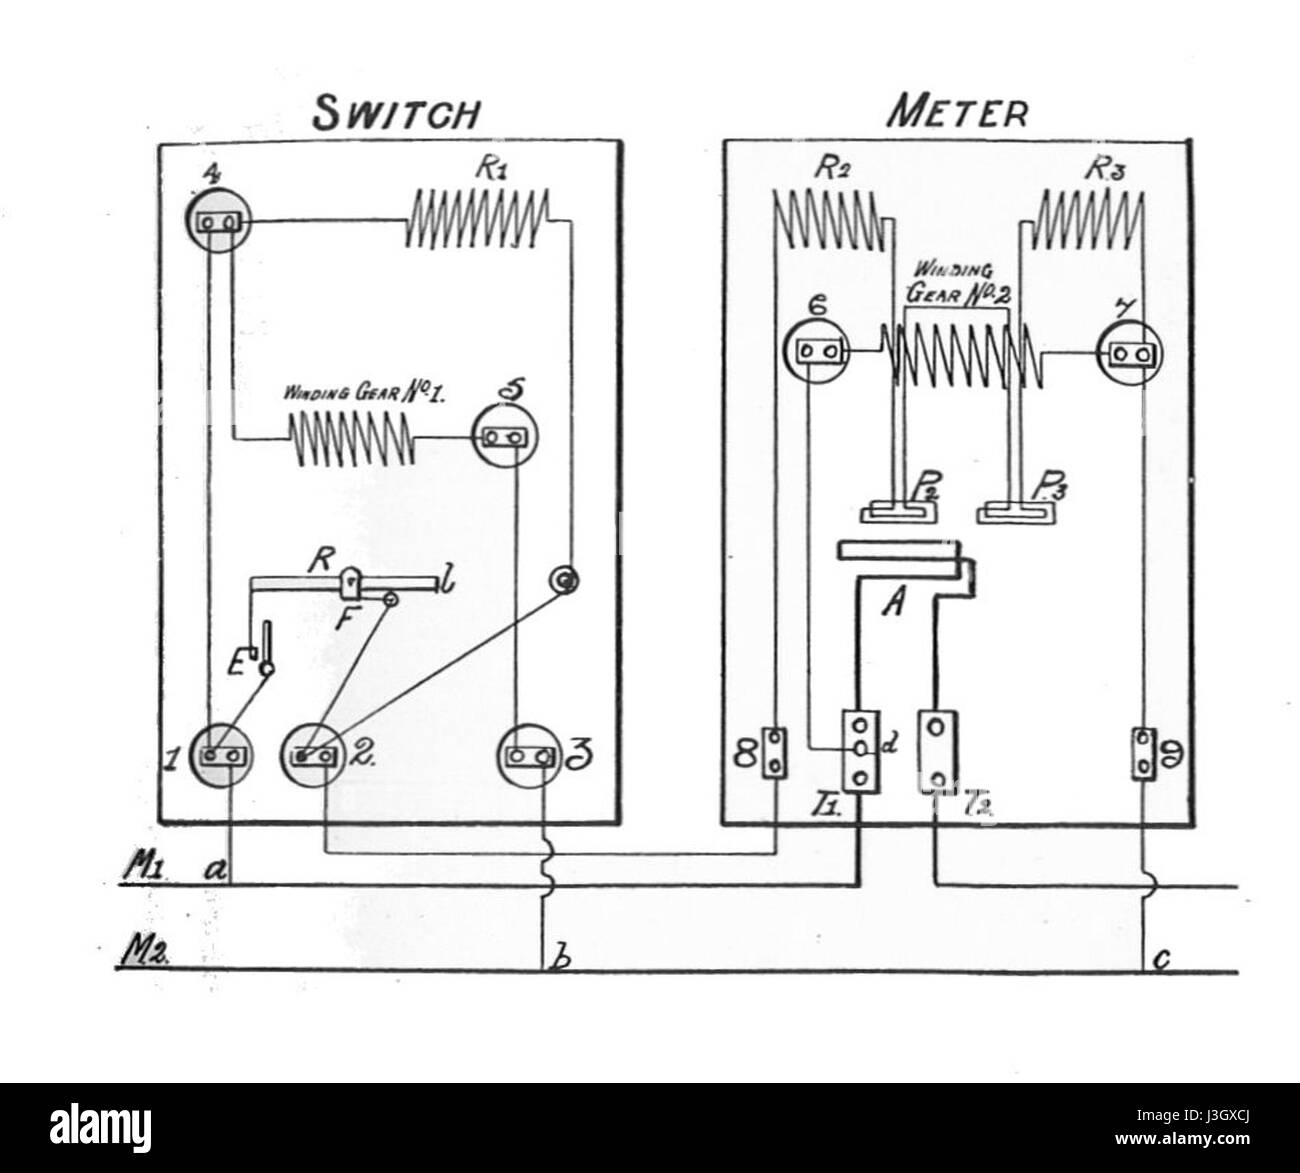 hight resolution of gec two rate electricity meter circuit rankin kennedy electrical installations vol ii 1909